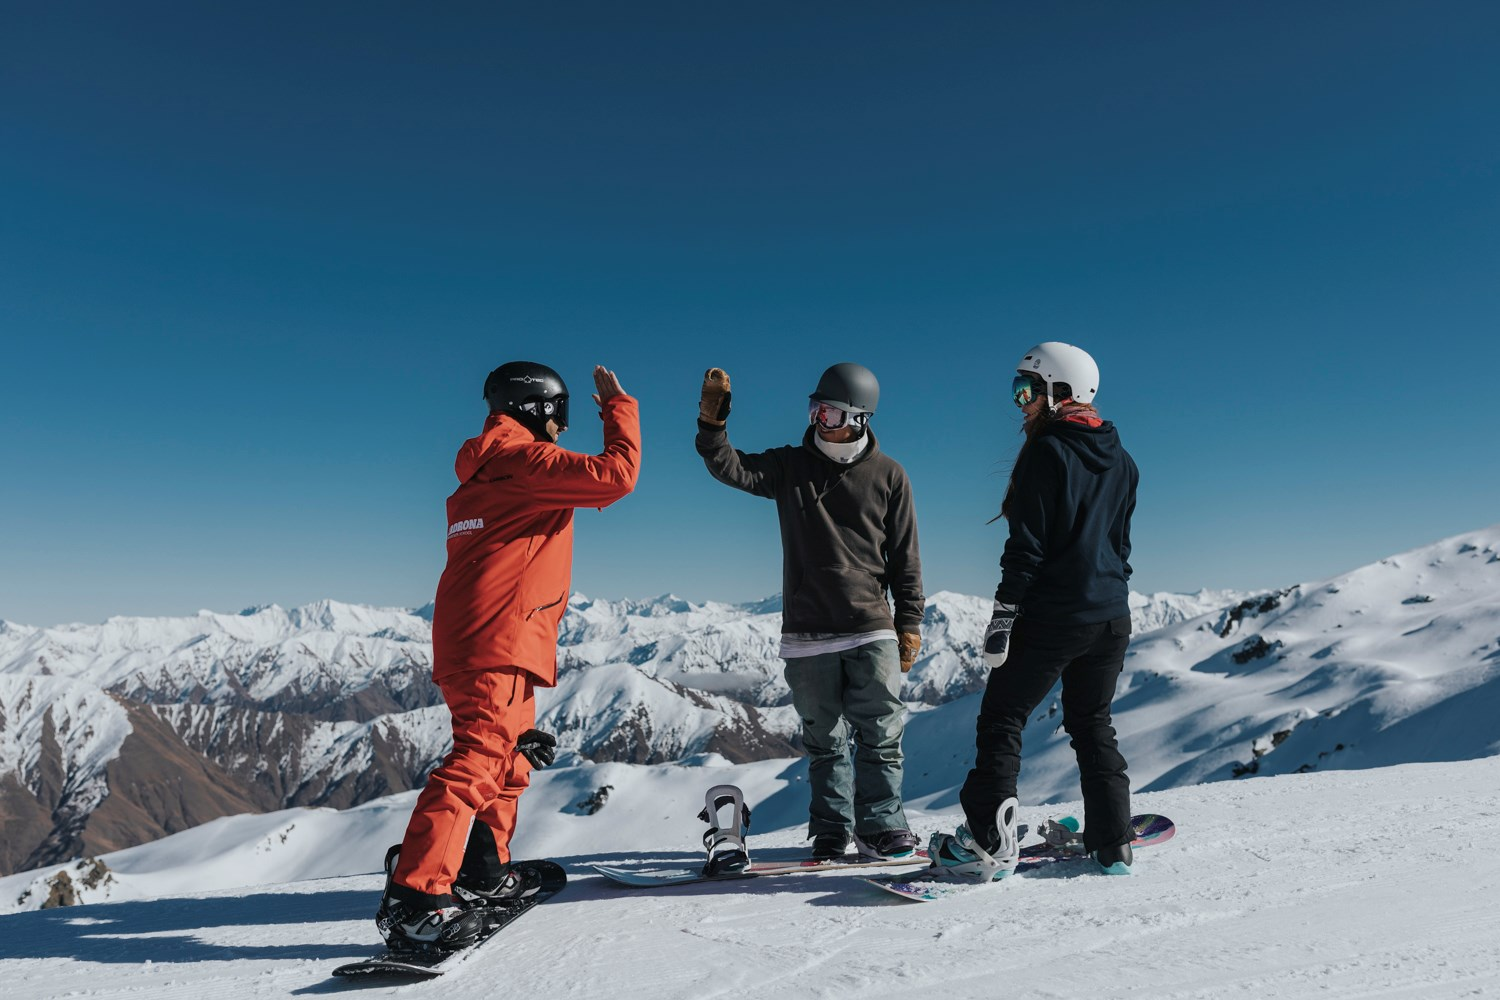 cardrona-skilessons-howtoski-howtosnowboard-queenstown ski hire